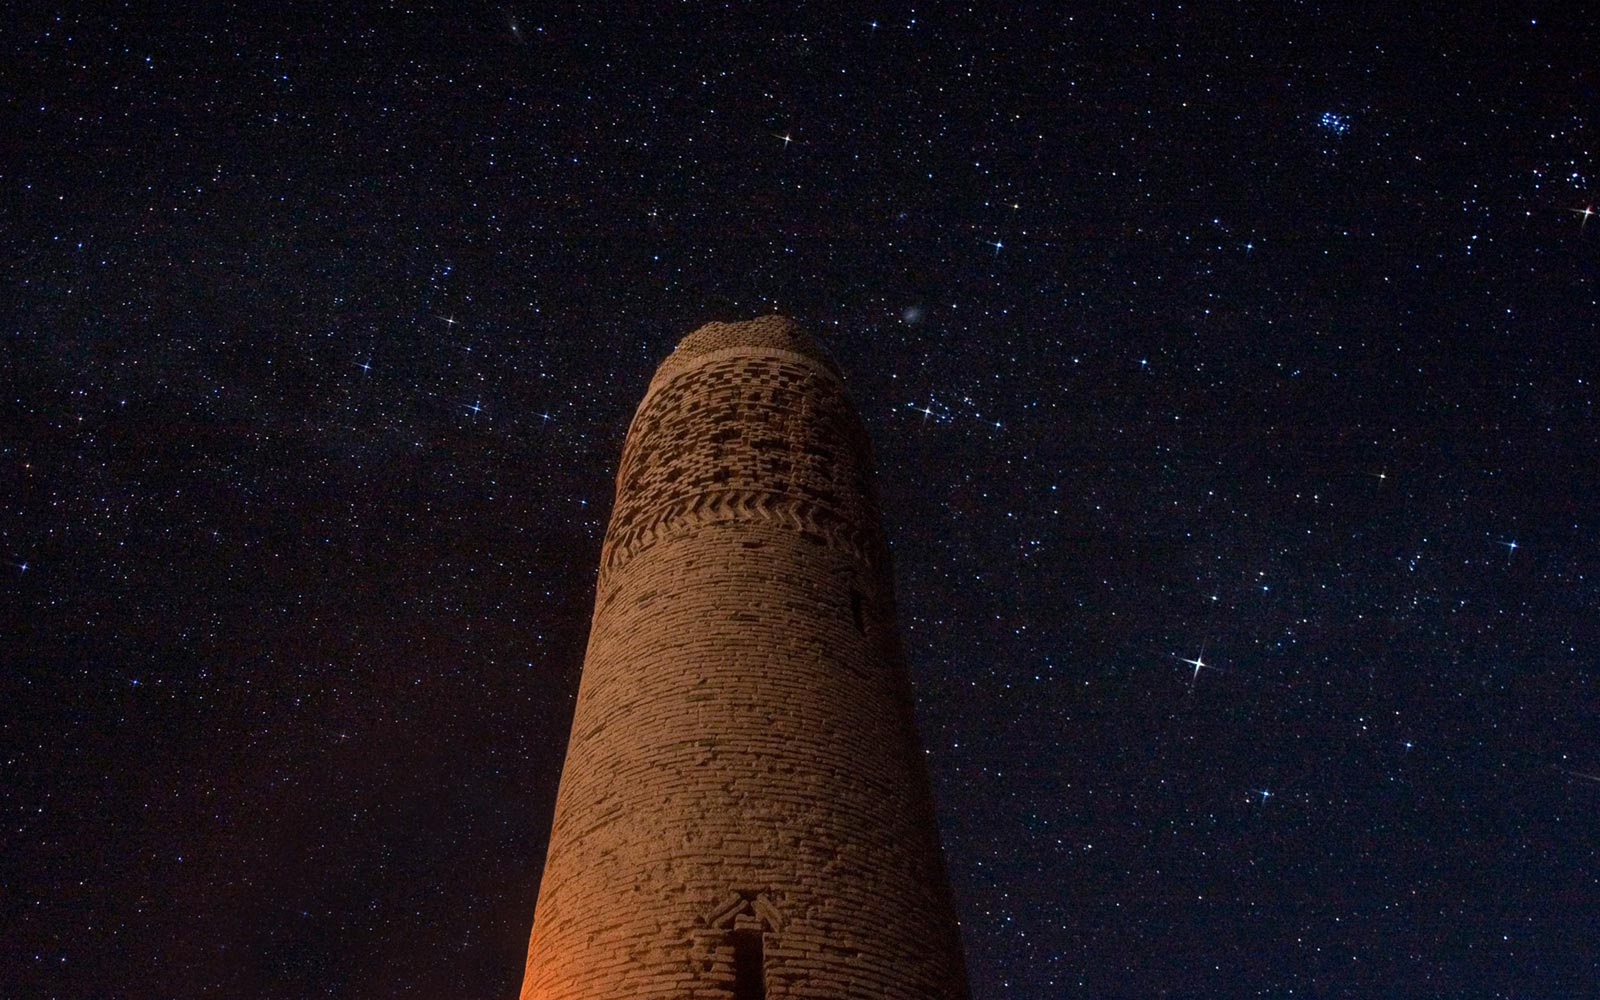 Find desert stars and solitude in the Lut desert, Iran